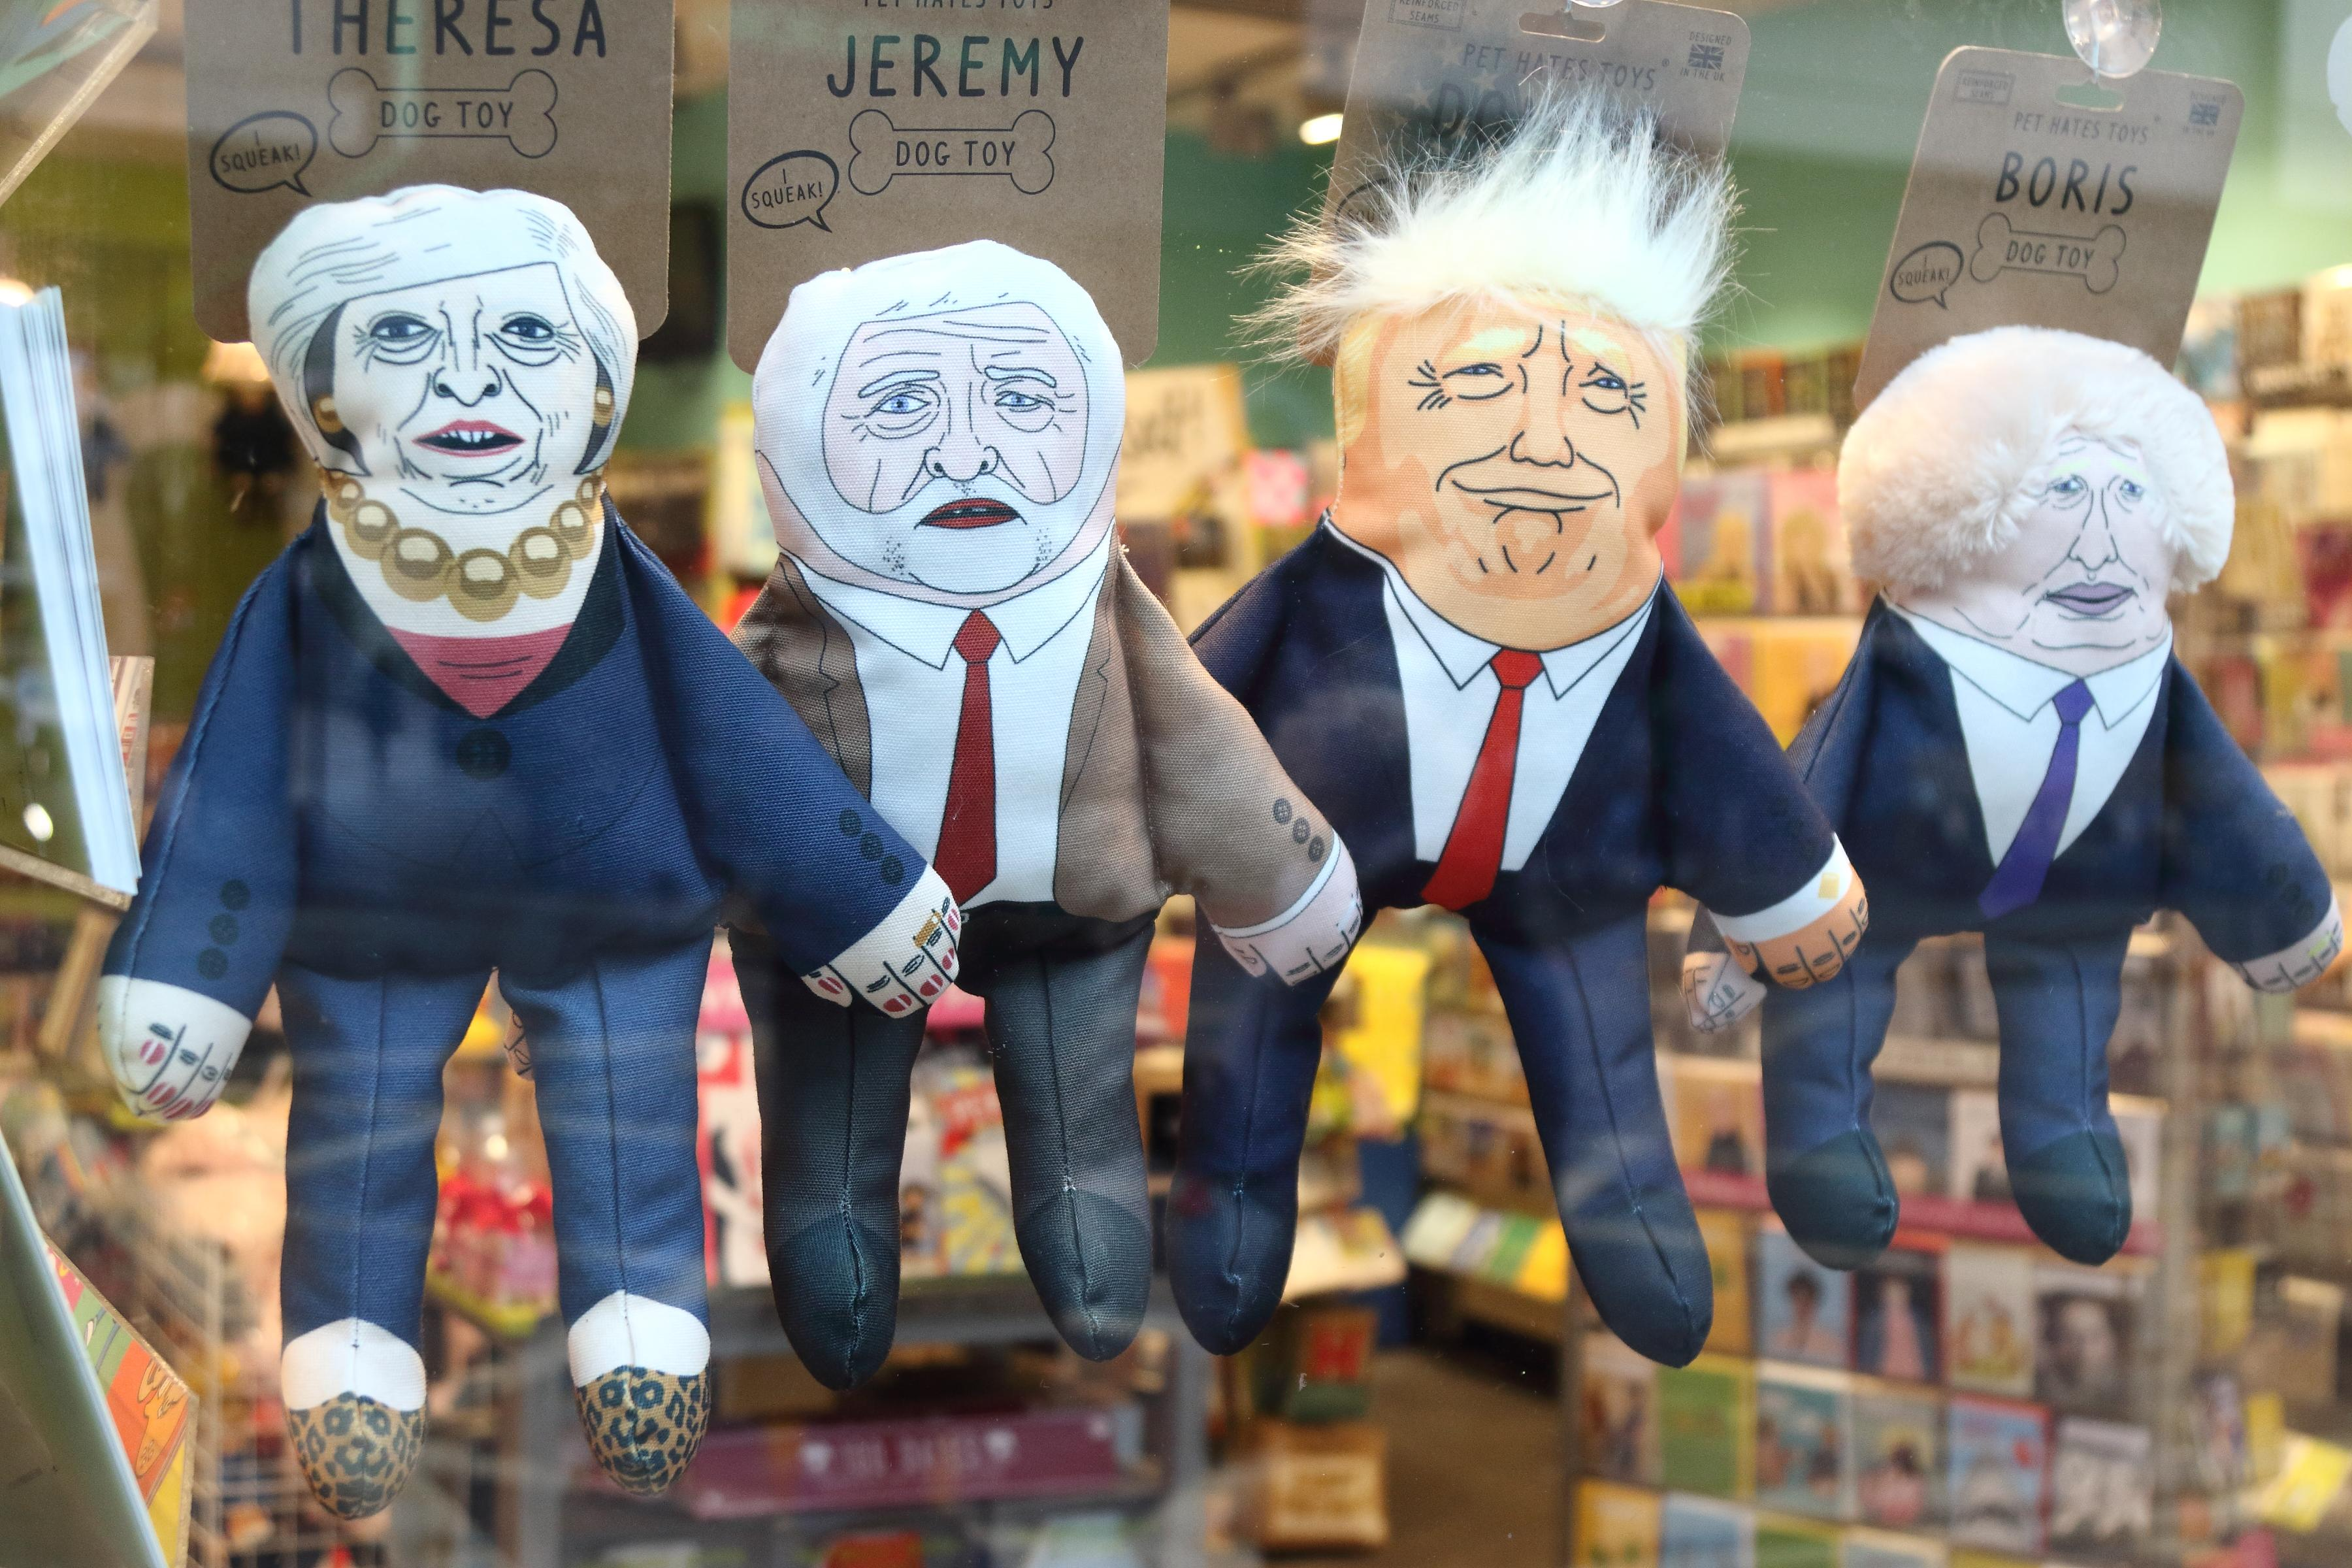 <p>Humorous puppets of politicians are seen on sale at the London shop – Theresa May (UK Prime Minister), Jeremy Corbyn (Leader of UK Labour Party) Donald Trump (US President) and Boris Johnson (former UK Foreign Secretary and Pro Brexiteer). (Photo: Keith Mayhew/SOPA Images/LightRocket via Getty Images) </p>